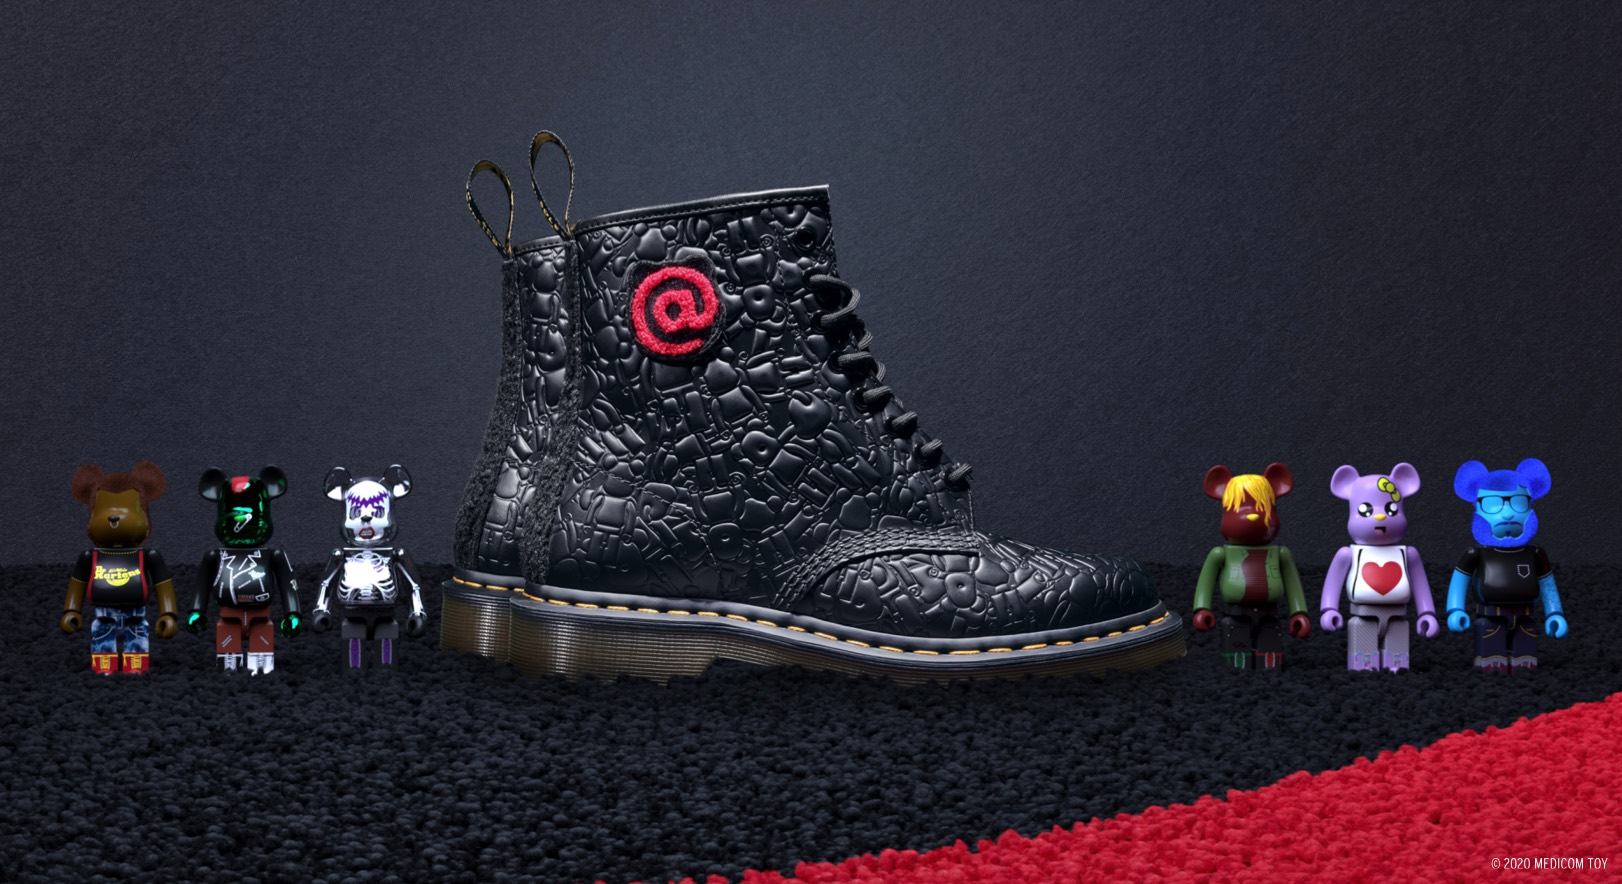 Dr. Martens collab with MEDICOM TOY has officially landed